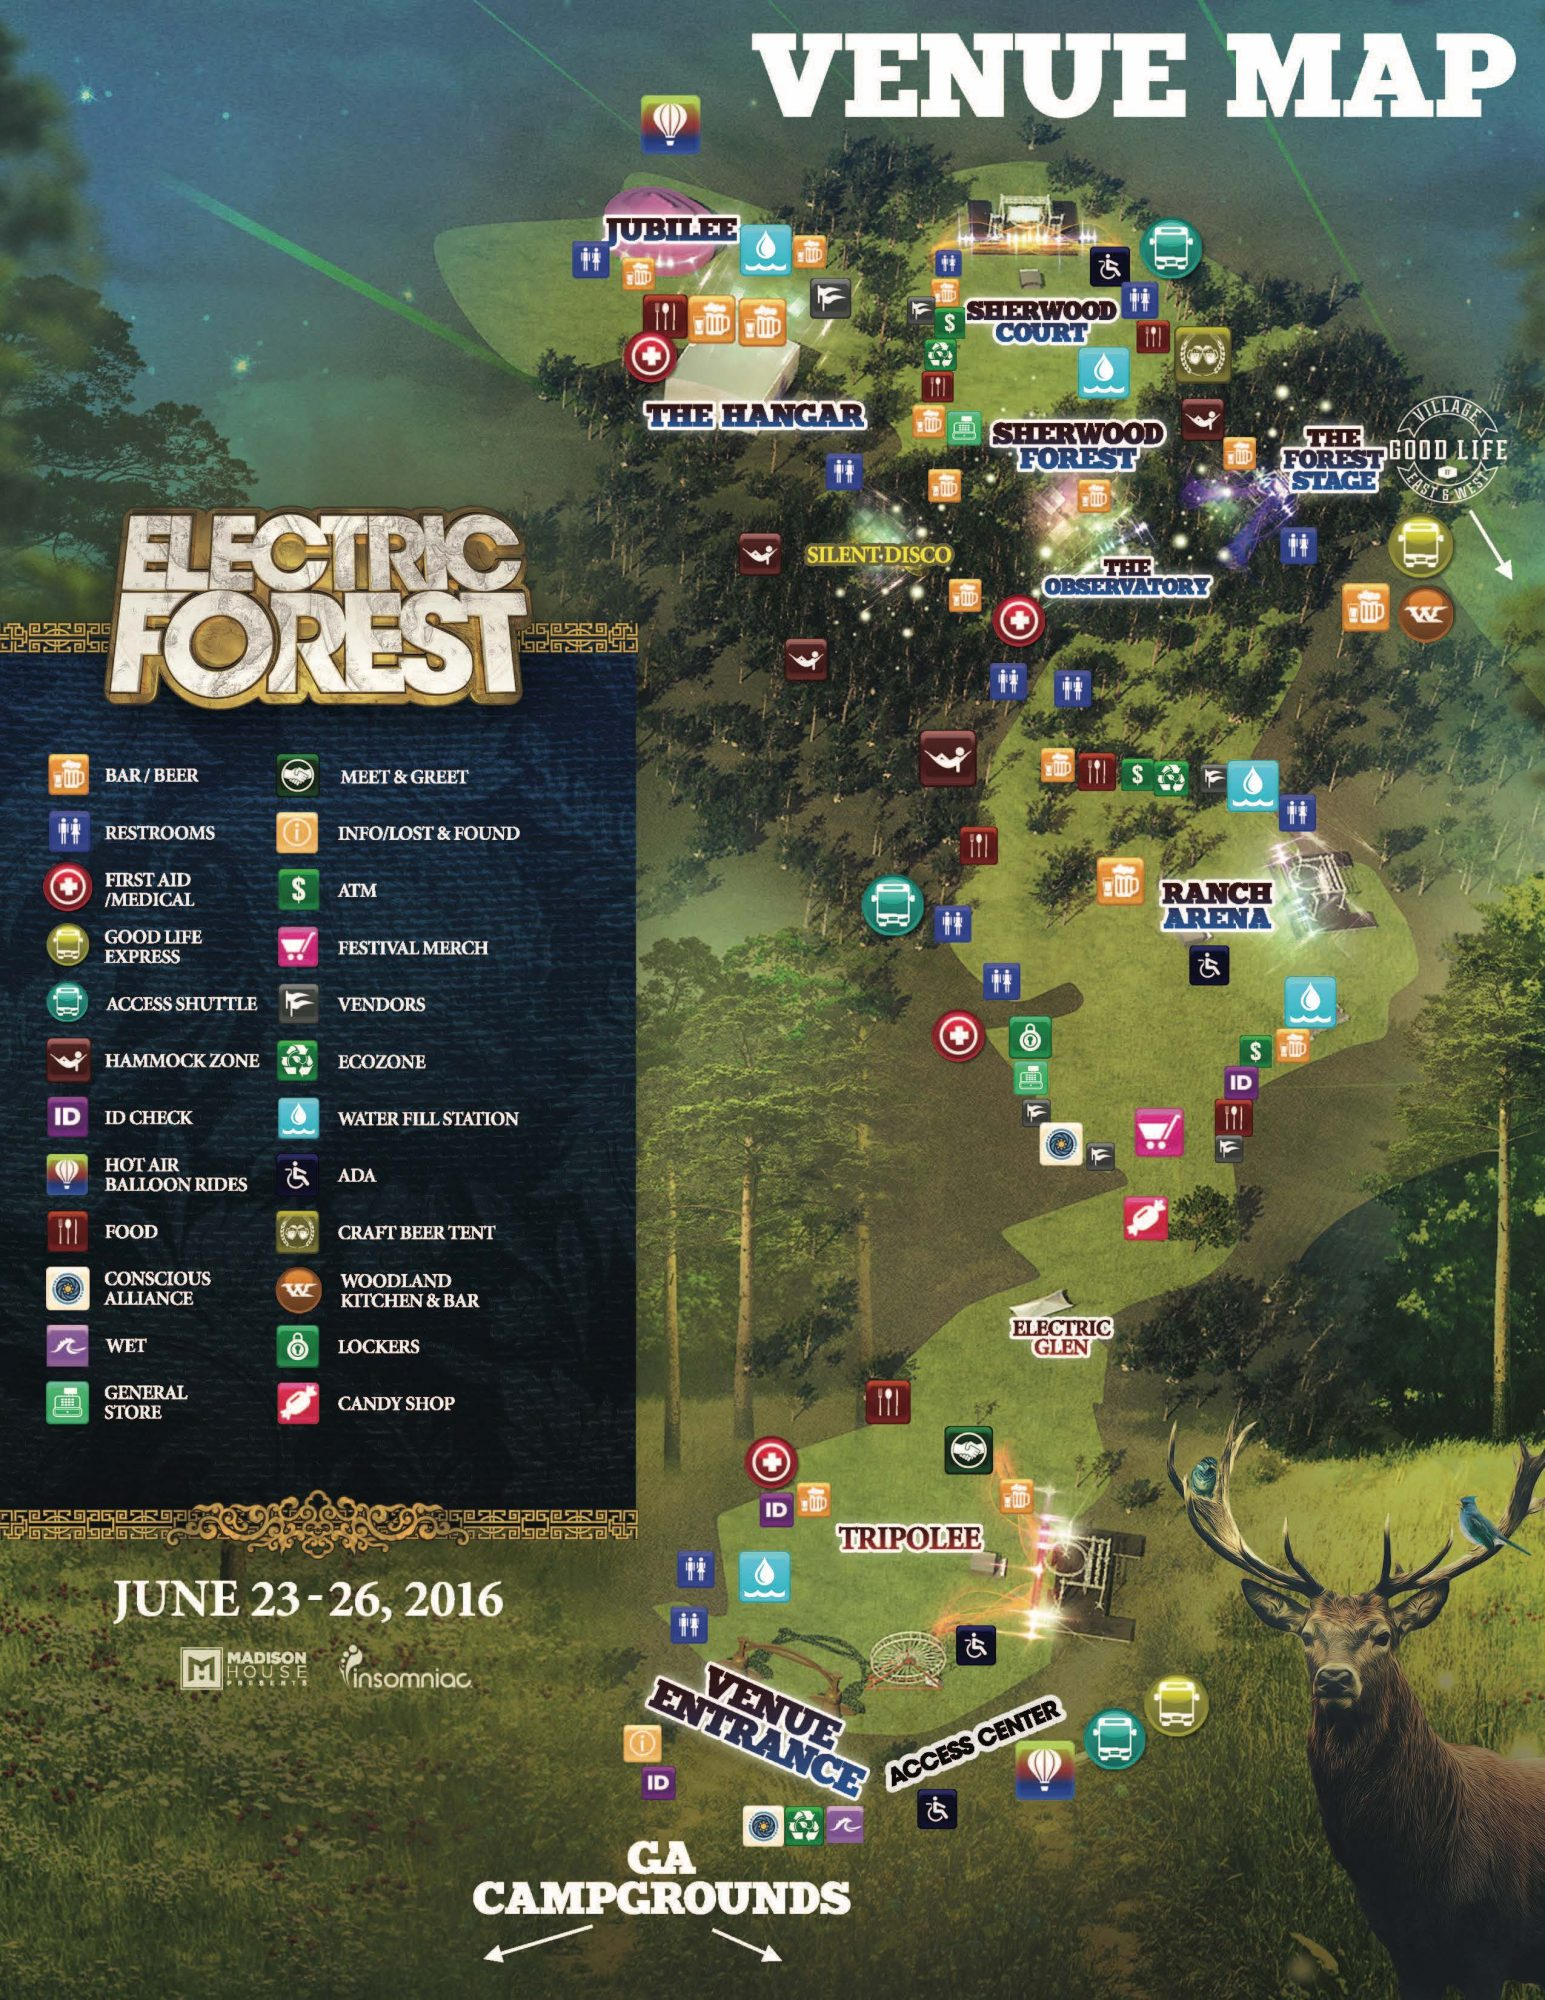 EF2016-Venue-Map-1545x2000